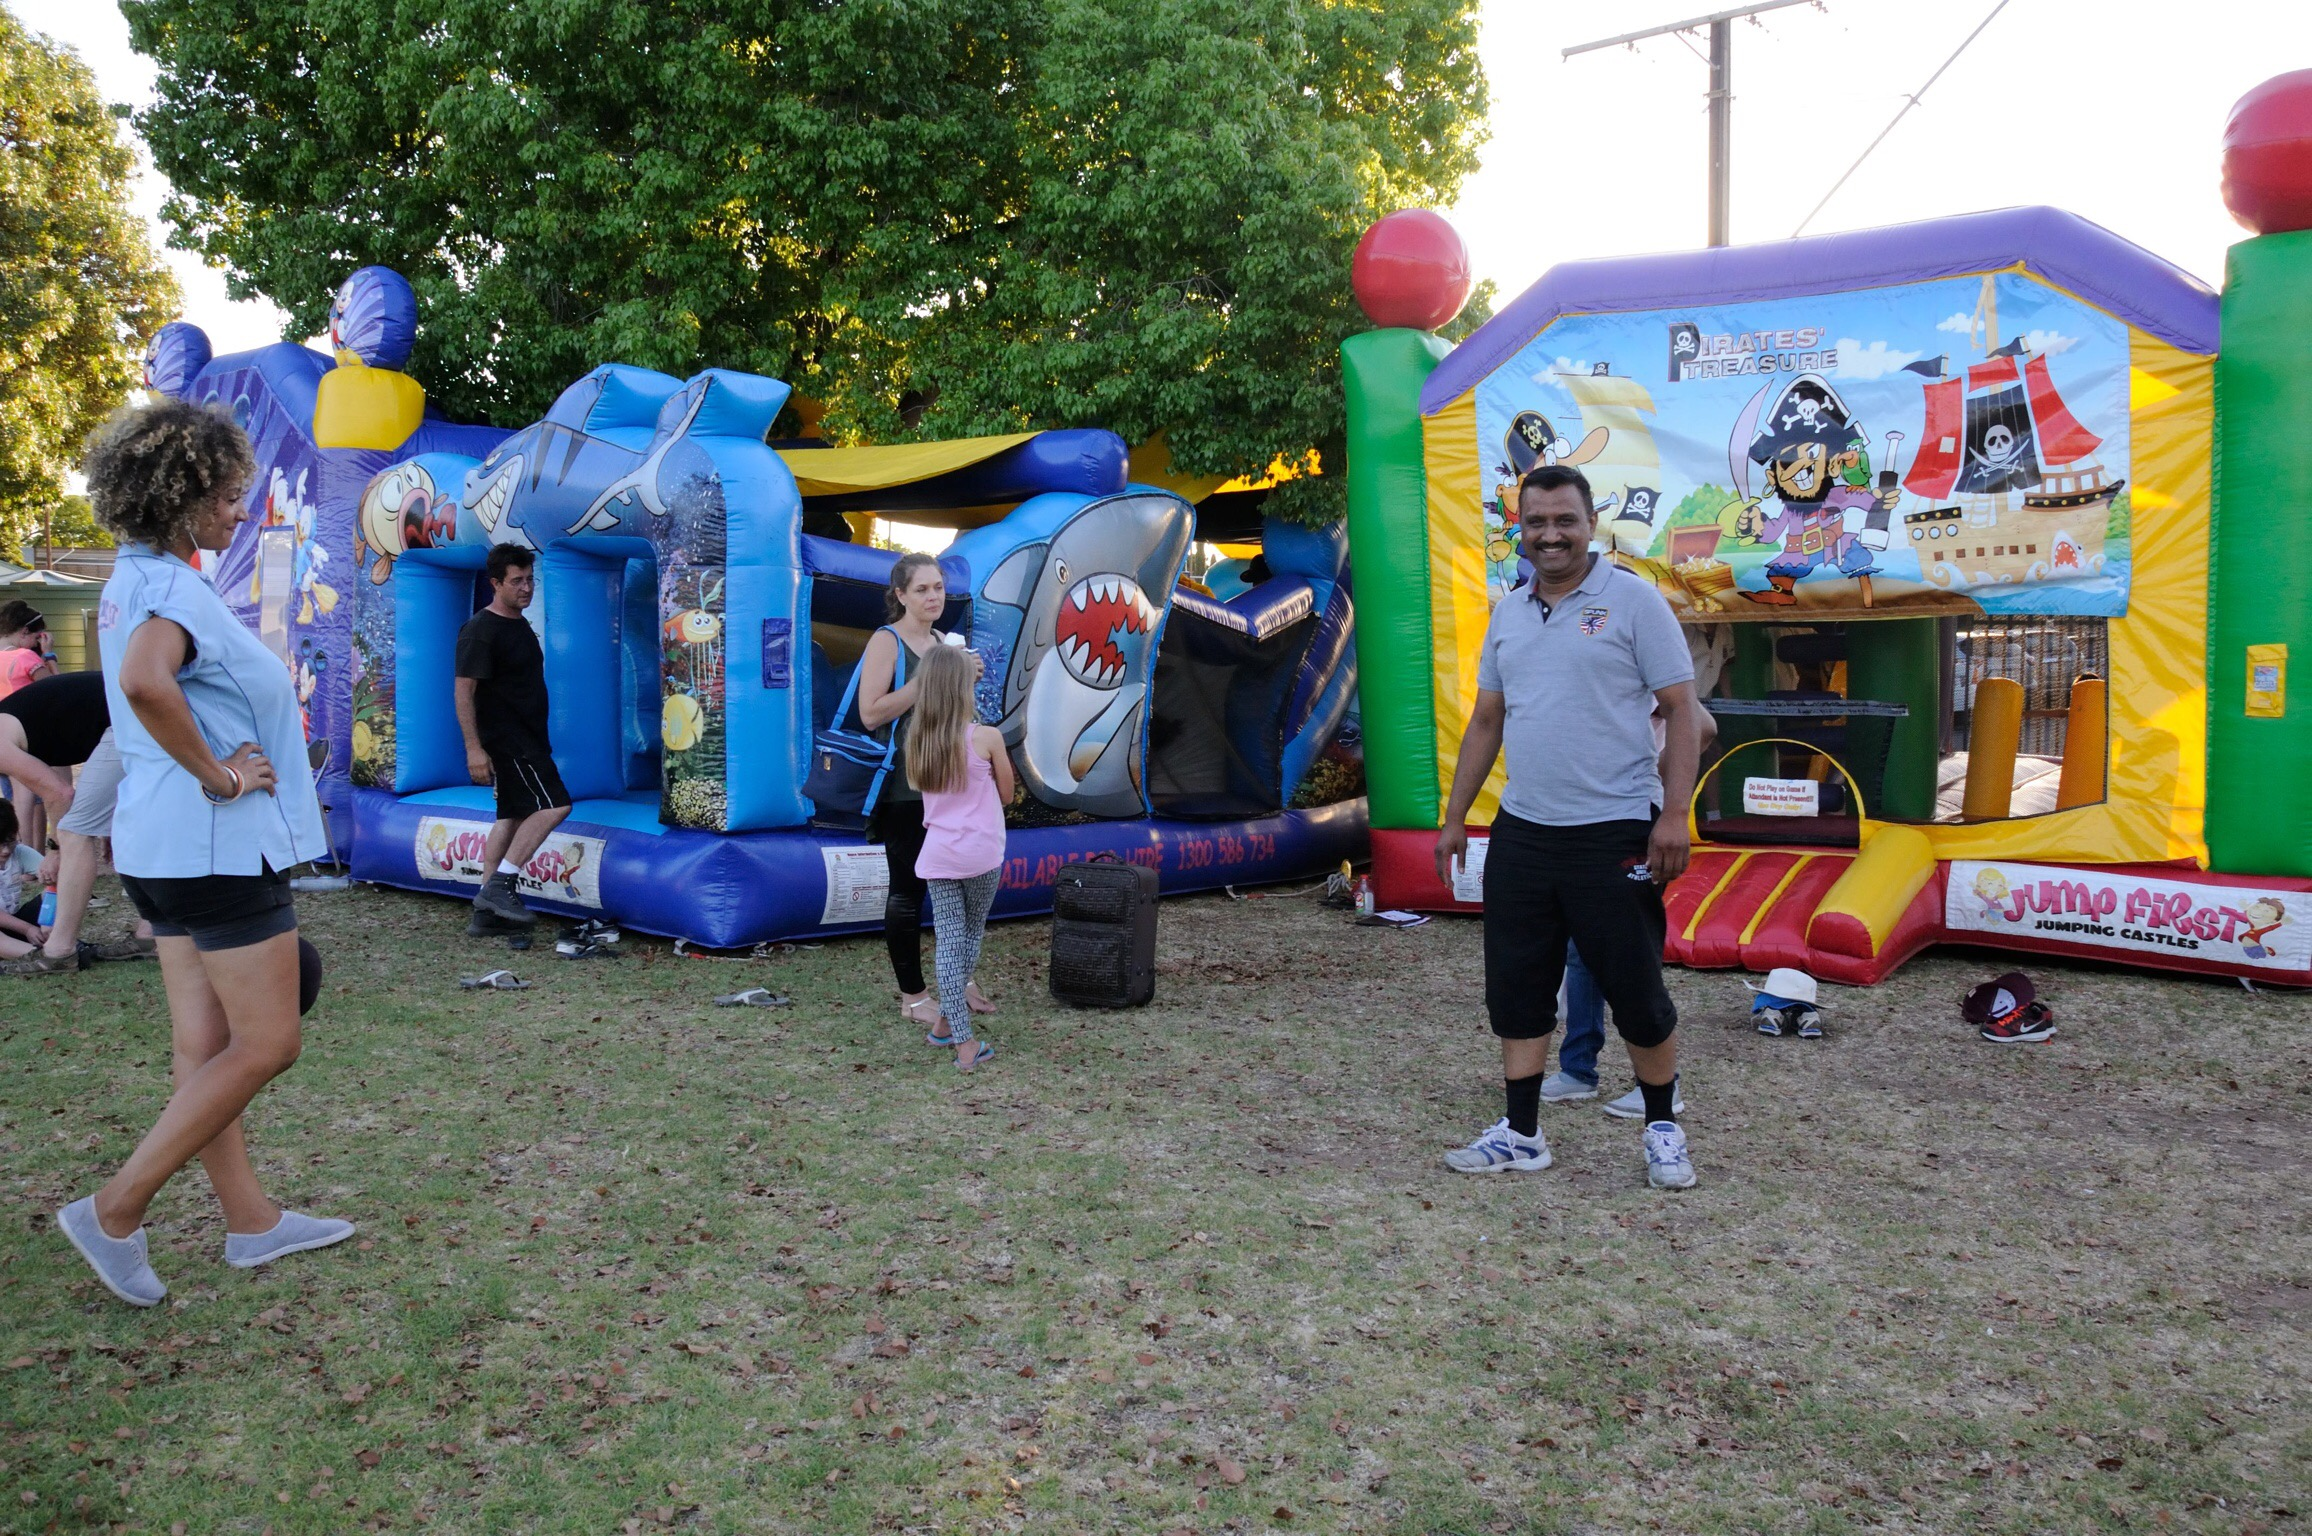 The 3 bouncy castles were put to great use, enjoyed by young and old